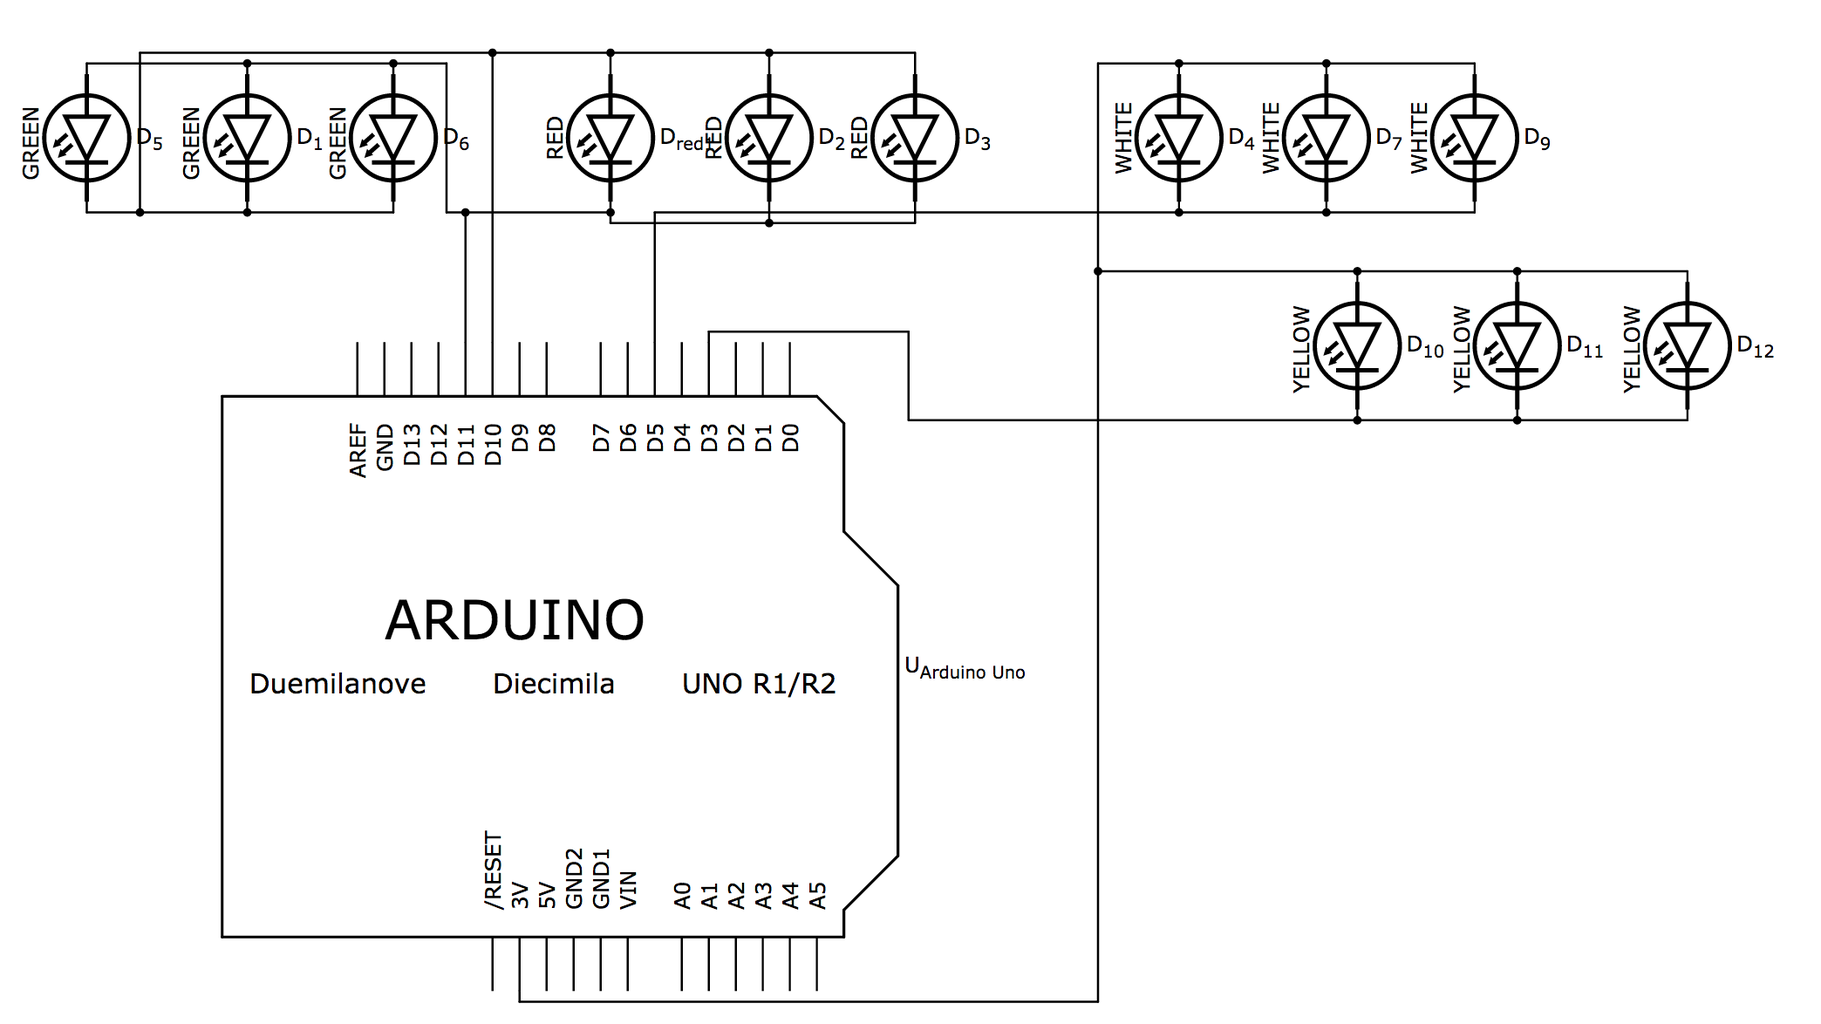 Wiring to the Arduino